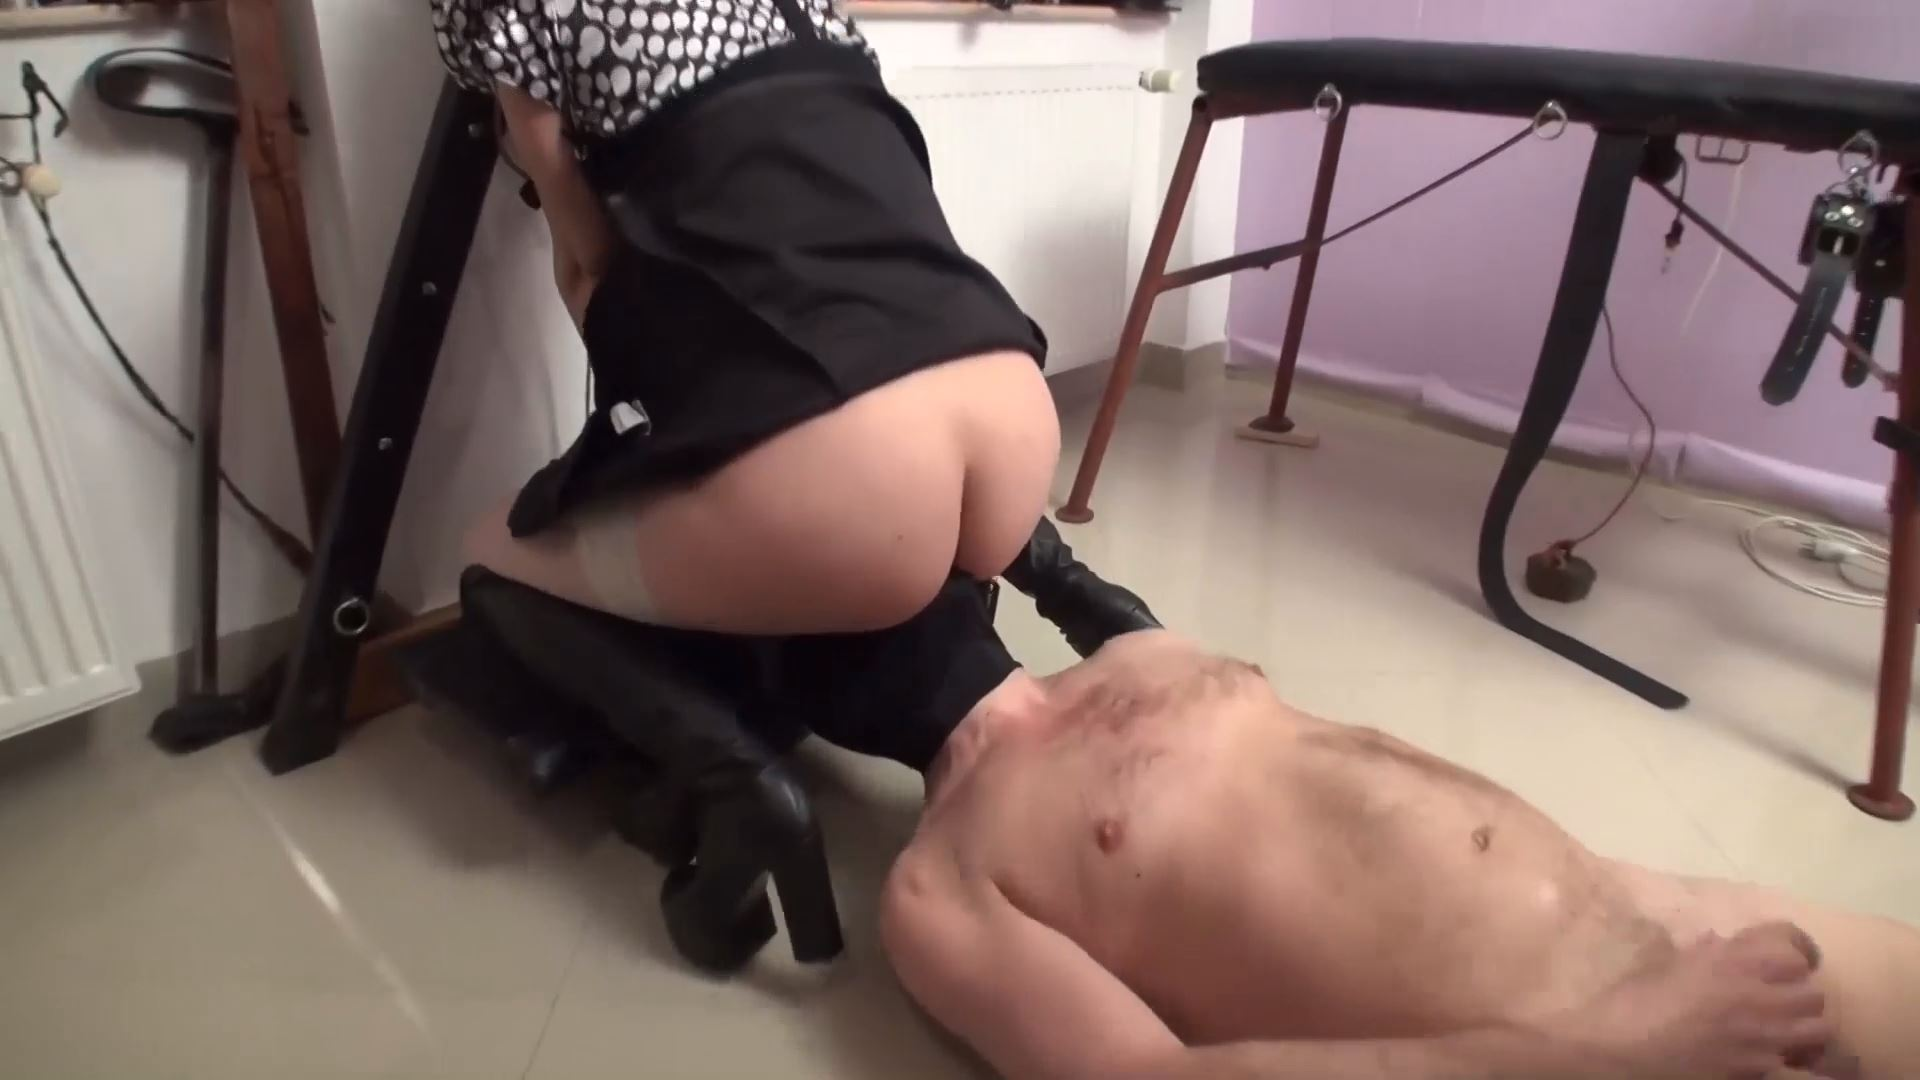 Goddess Andreea and her assistant in pantyhose - BIZARRE GODDESSES - FULL HD/1080p/MP4